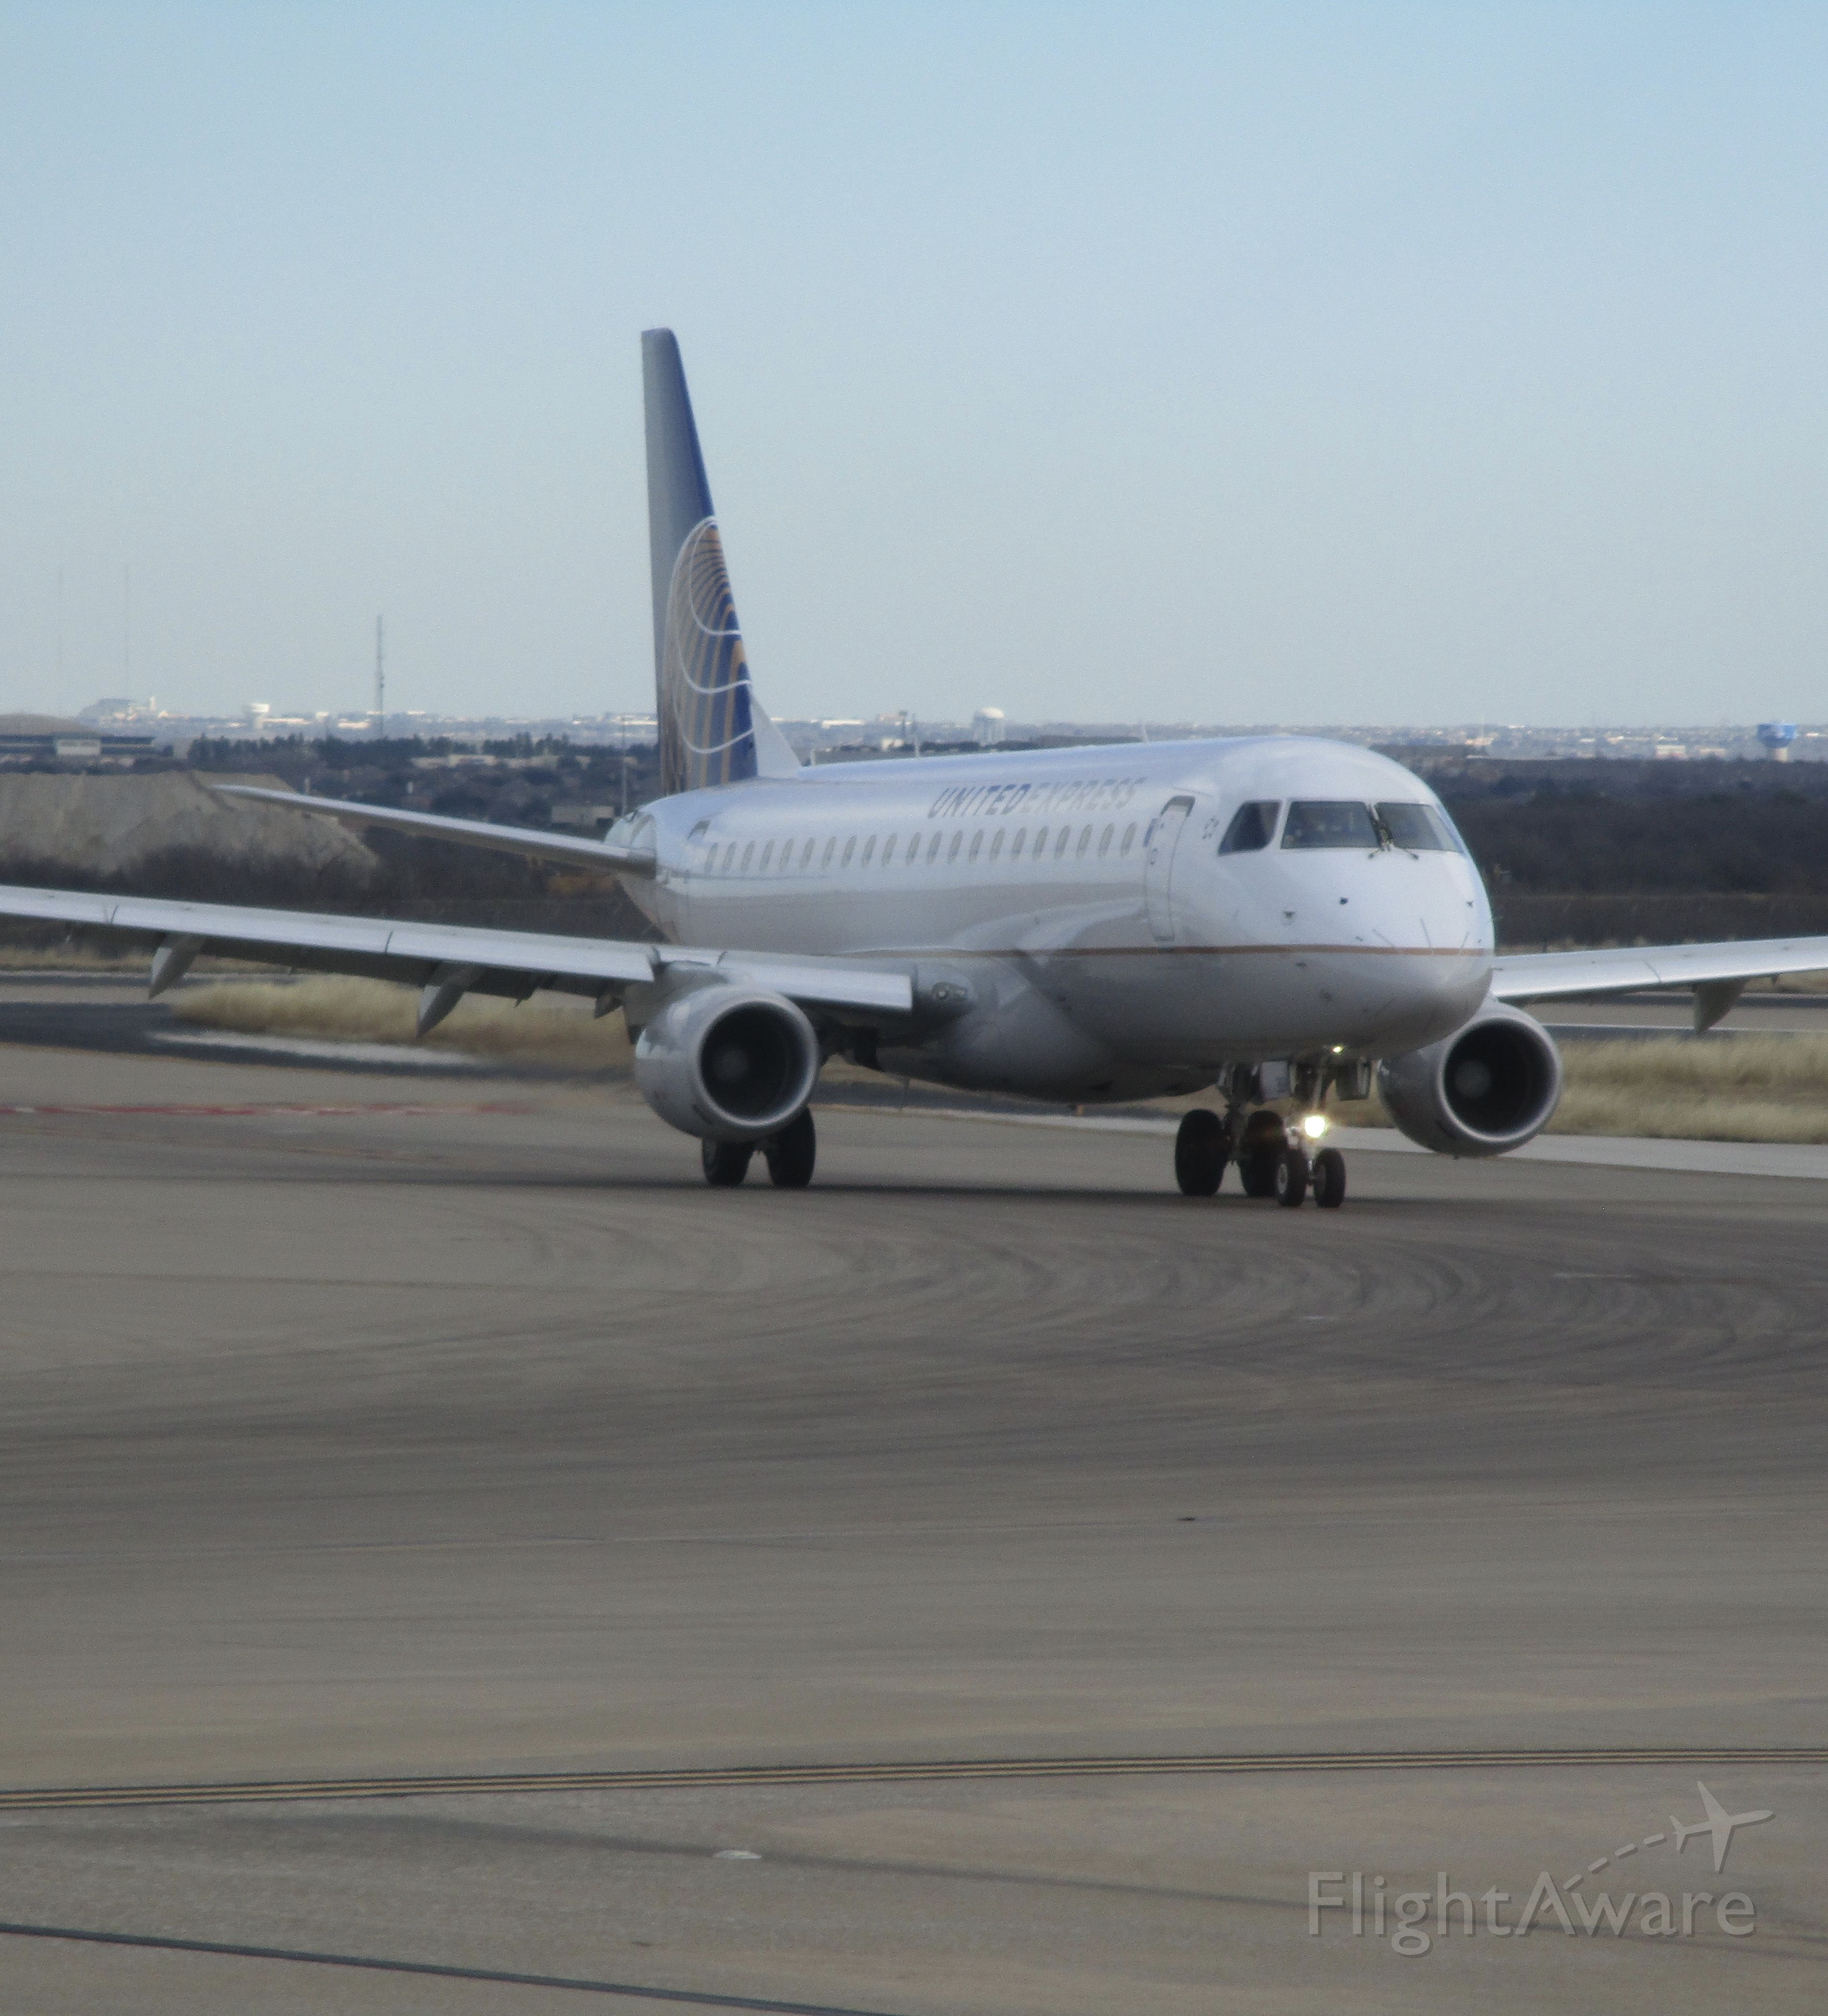 Embraer 175 (N85354) - United Express flight 6252 arriving from Houston, TX